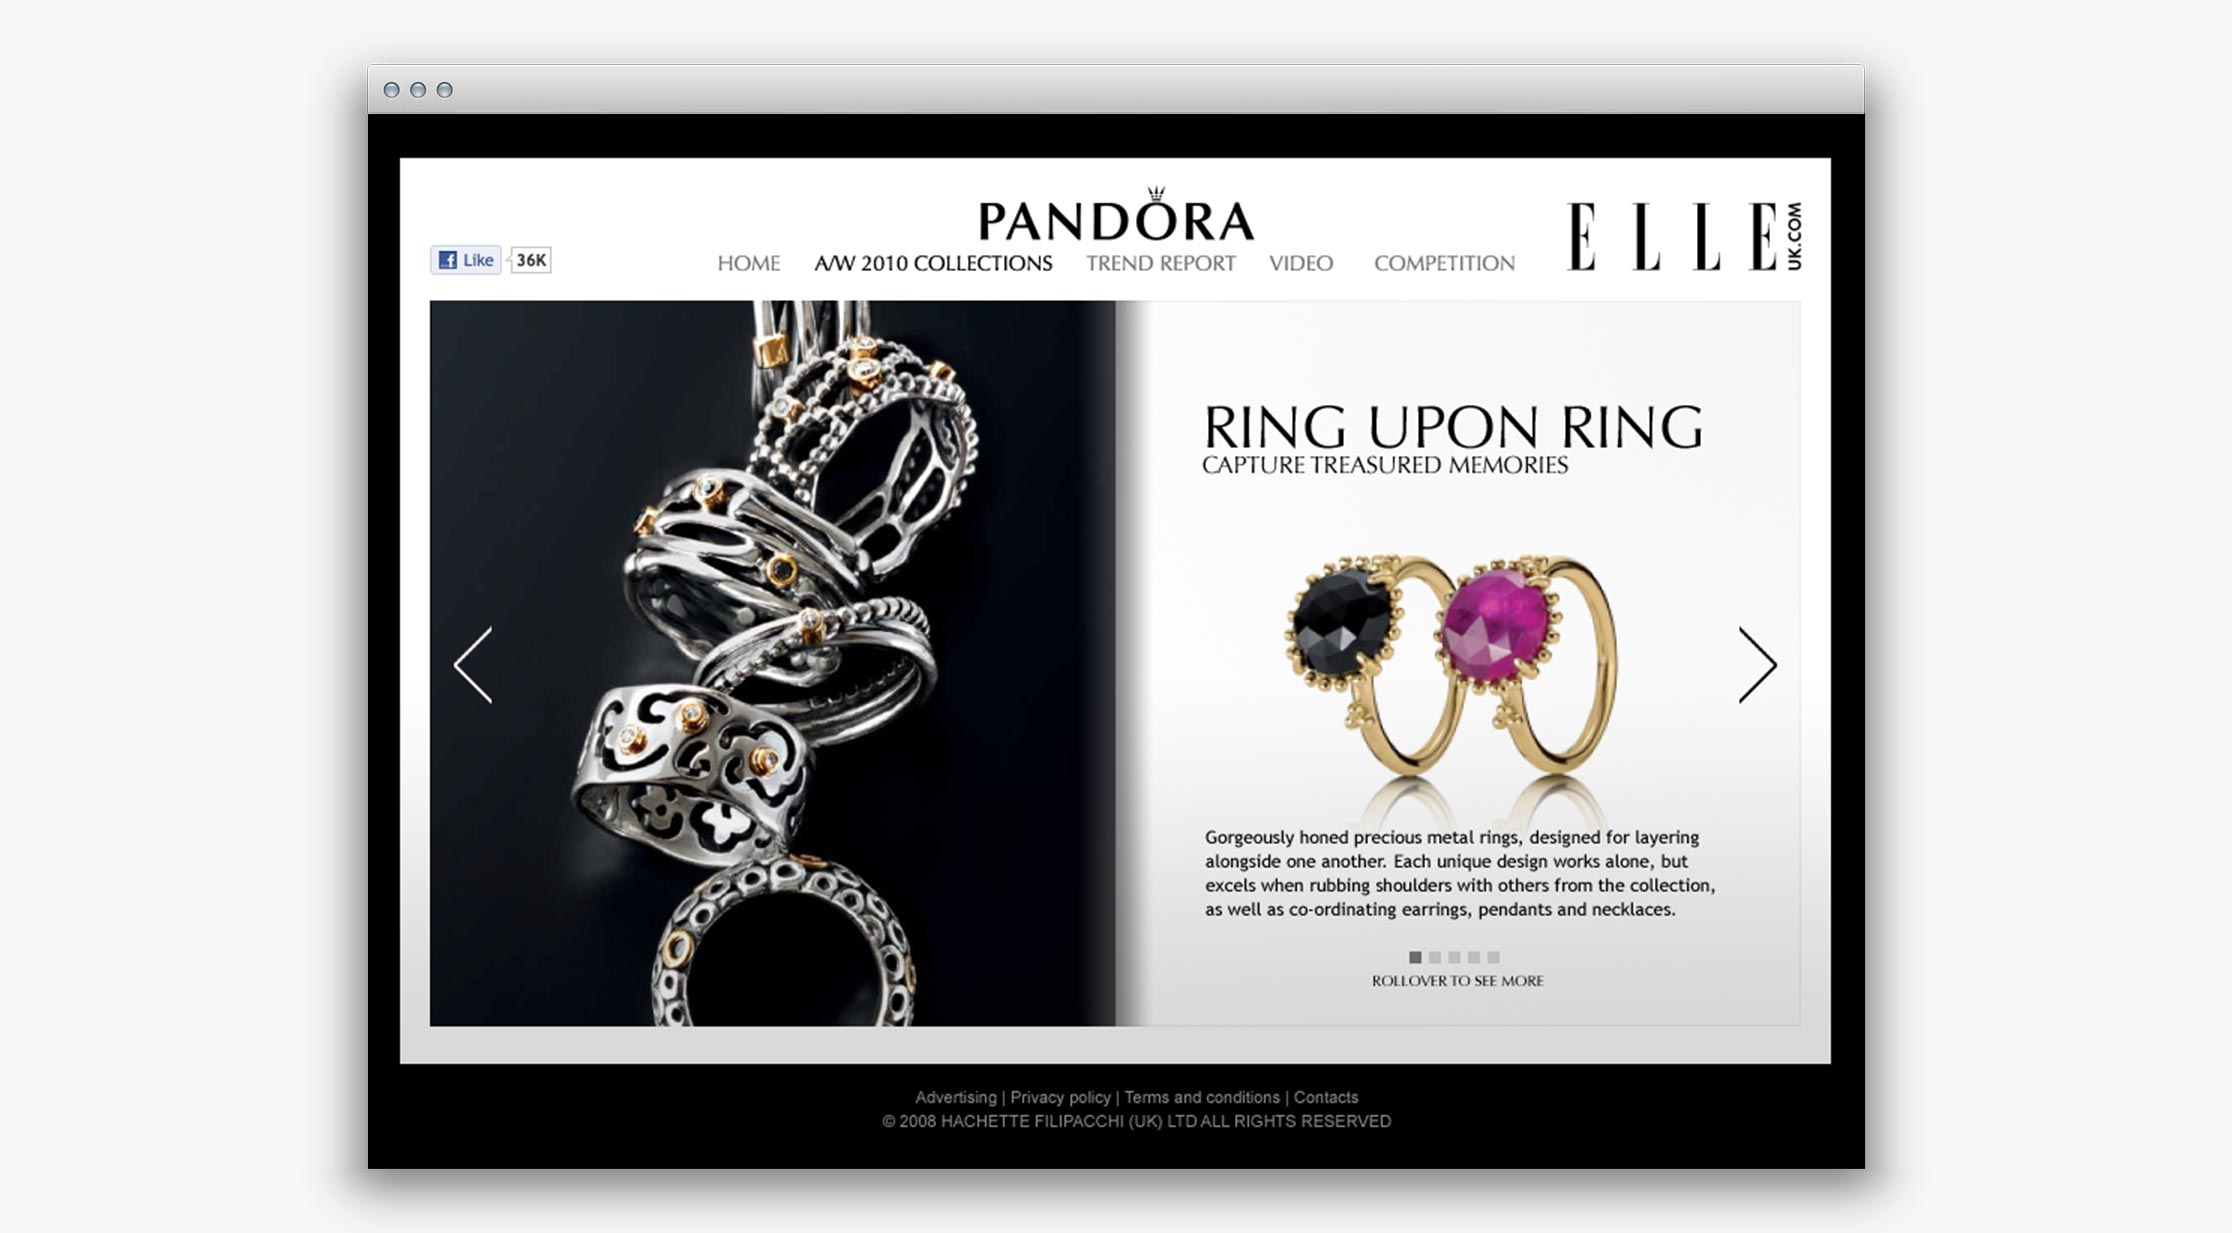 ElleUk-Pandora-Collections.jpg